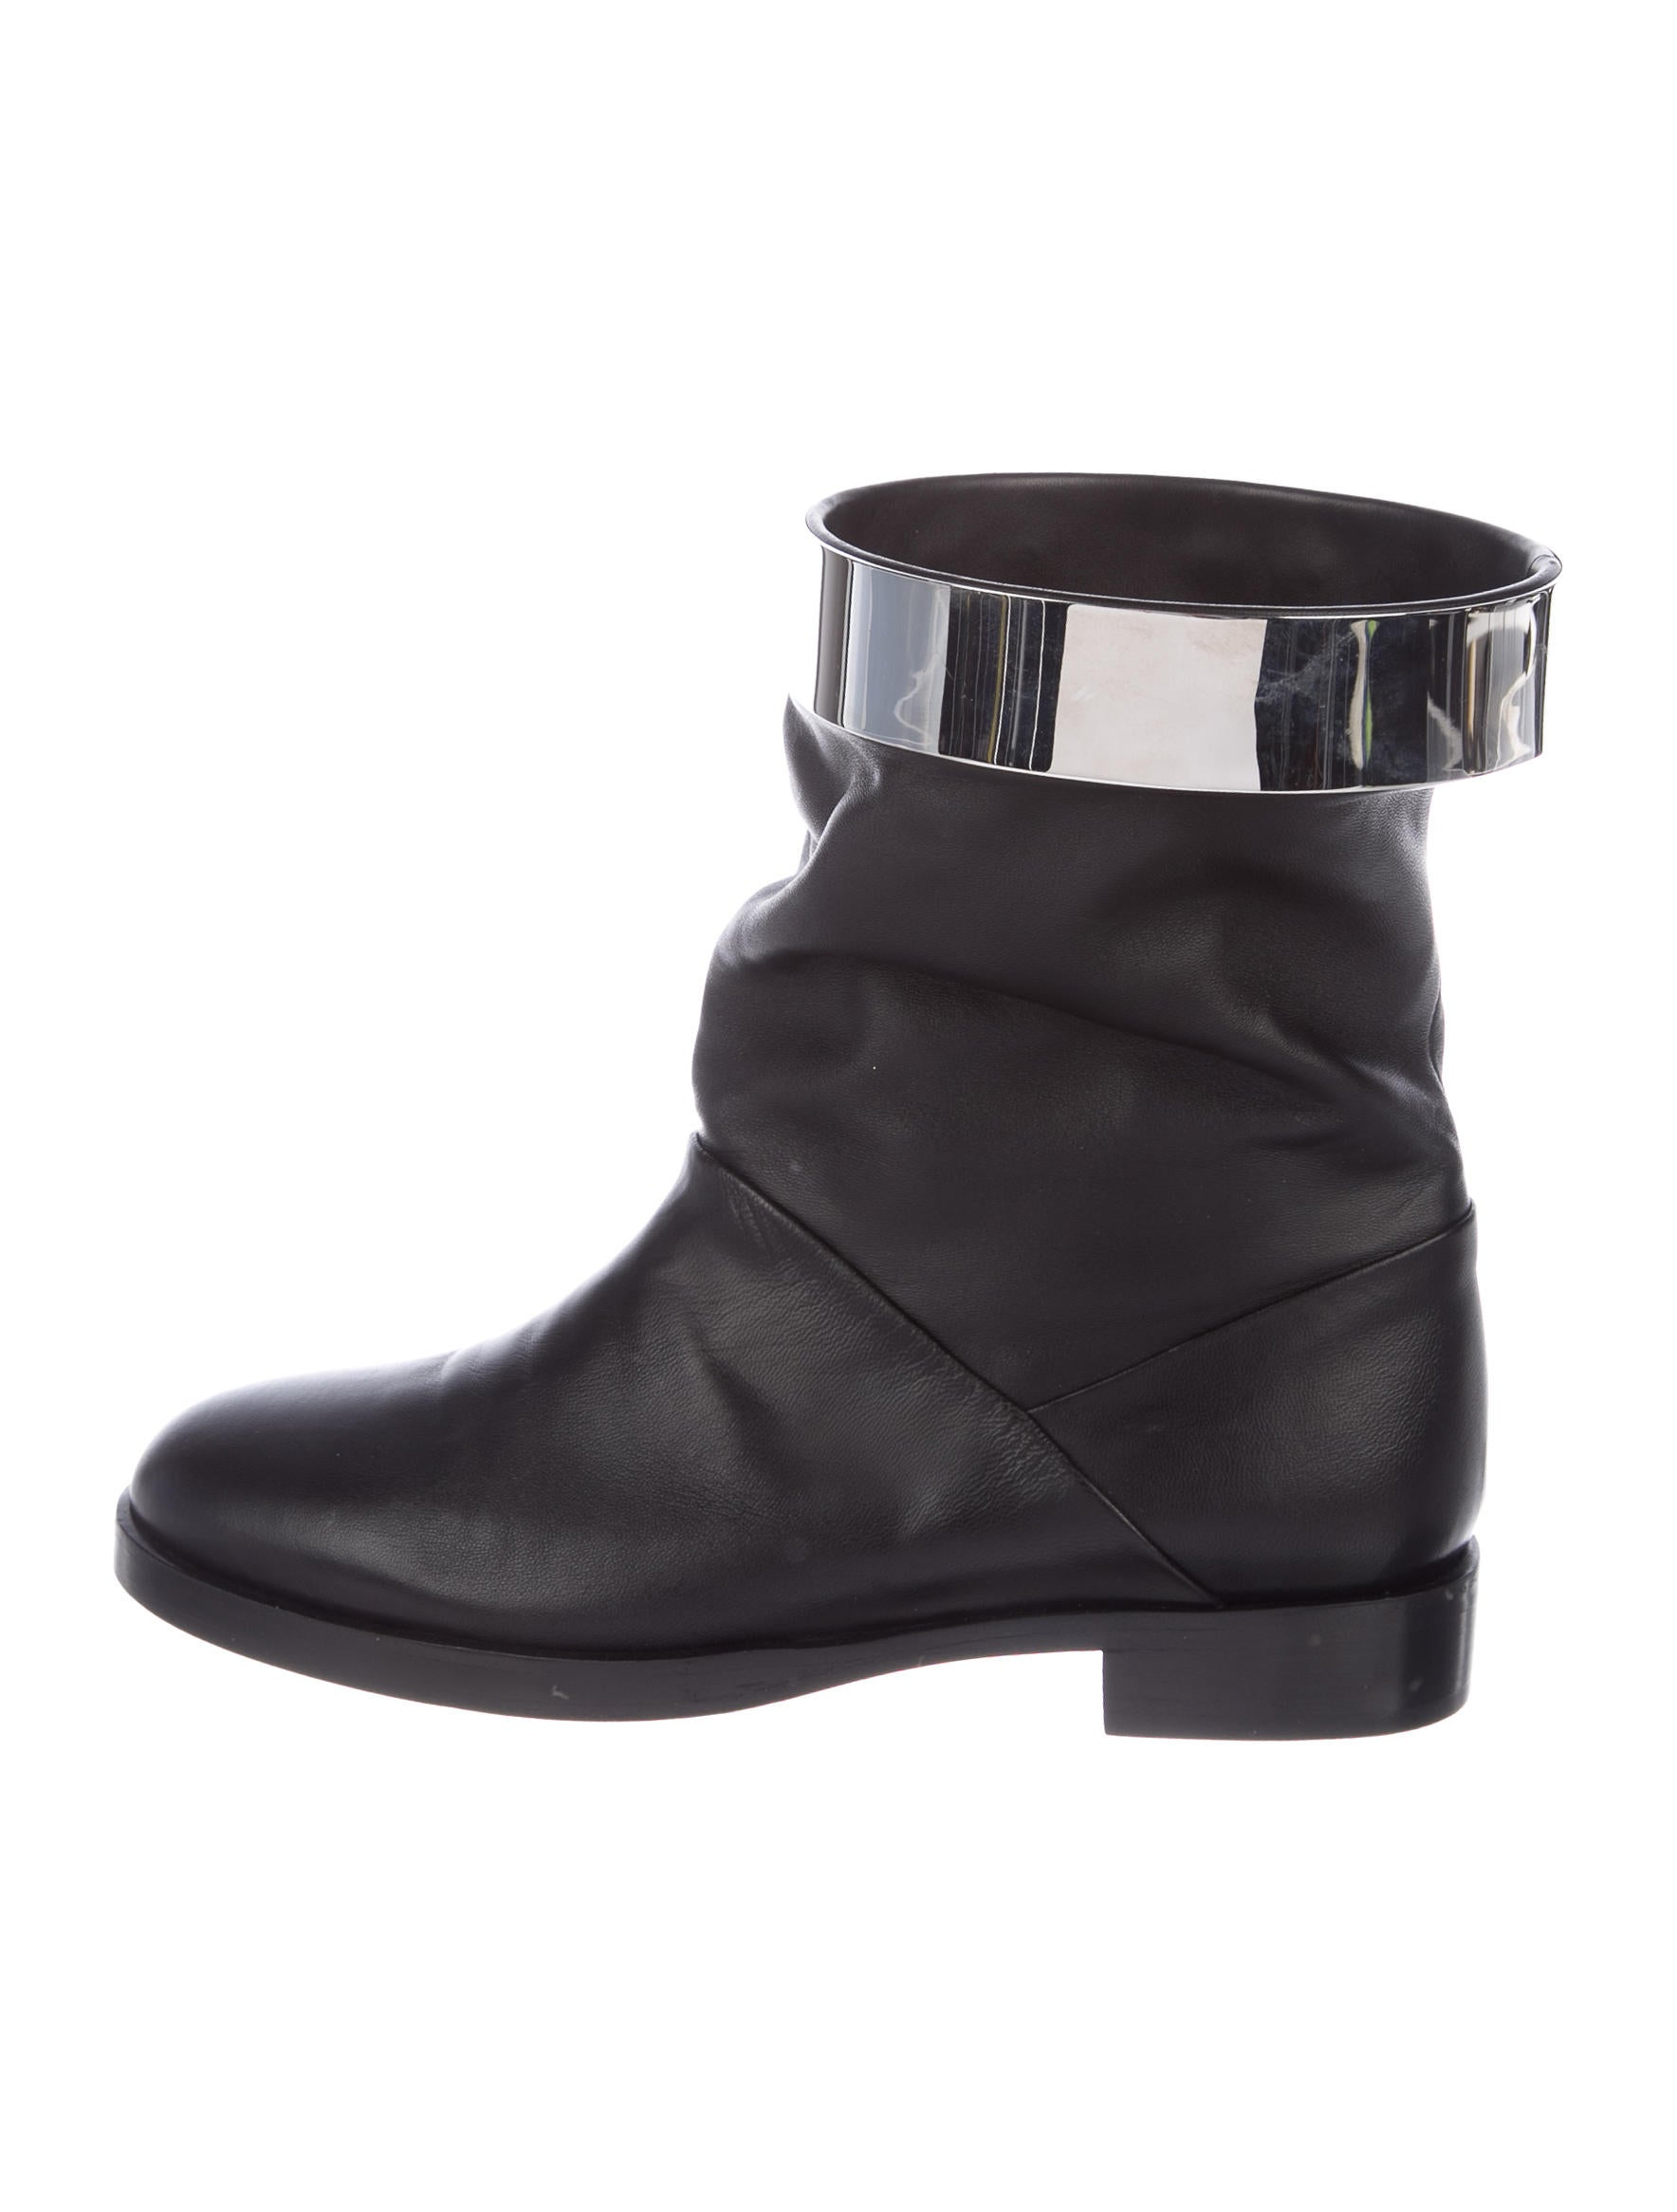 Pierre Hardy Leather Mid-Calf Boots free shipping fake free shipping pre order eYgFJ5V7